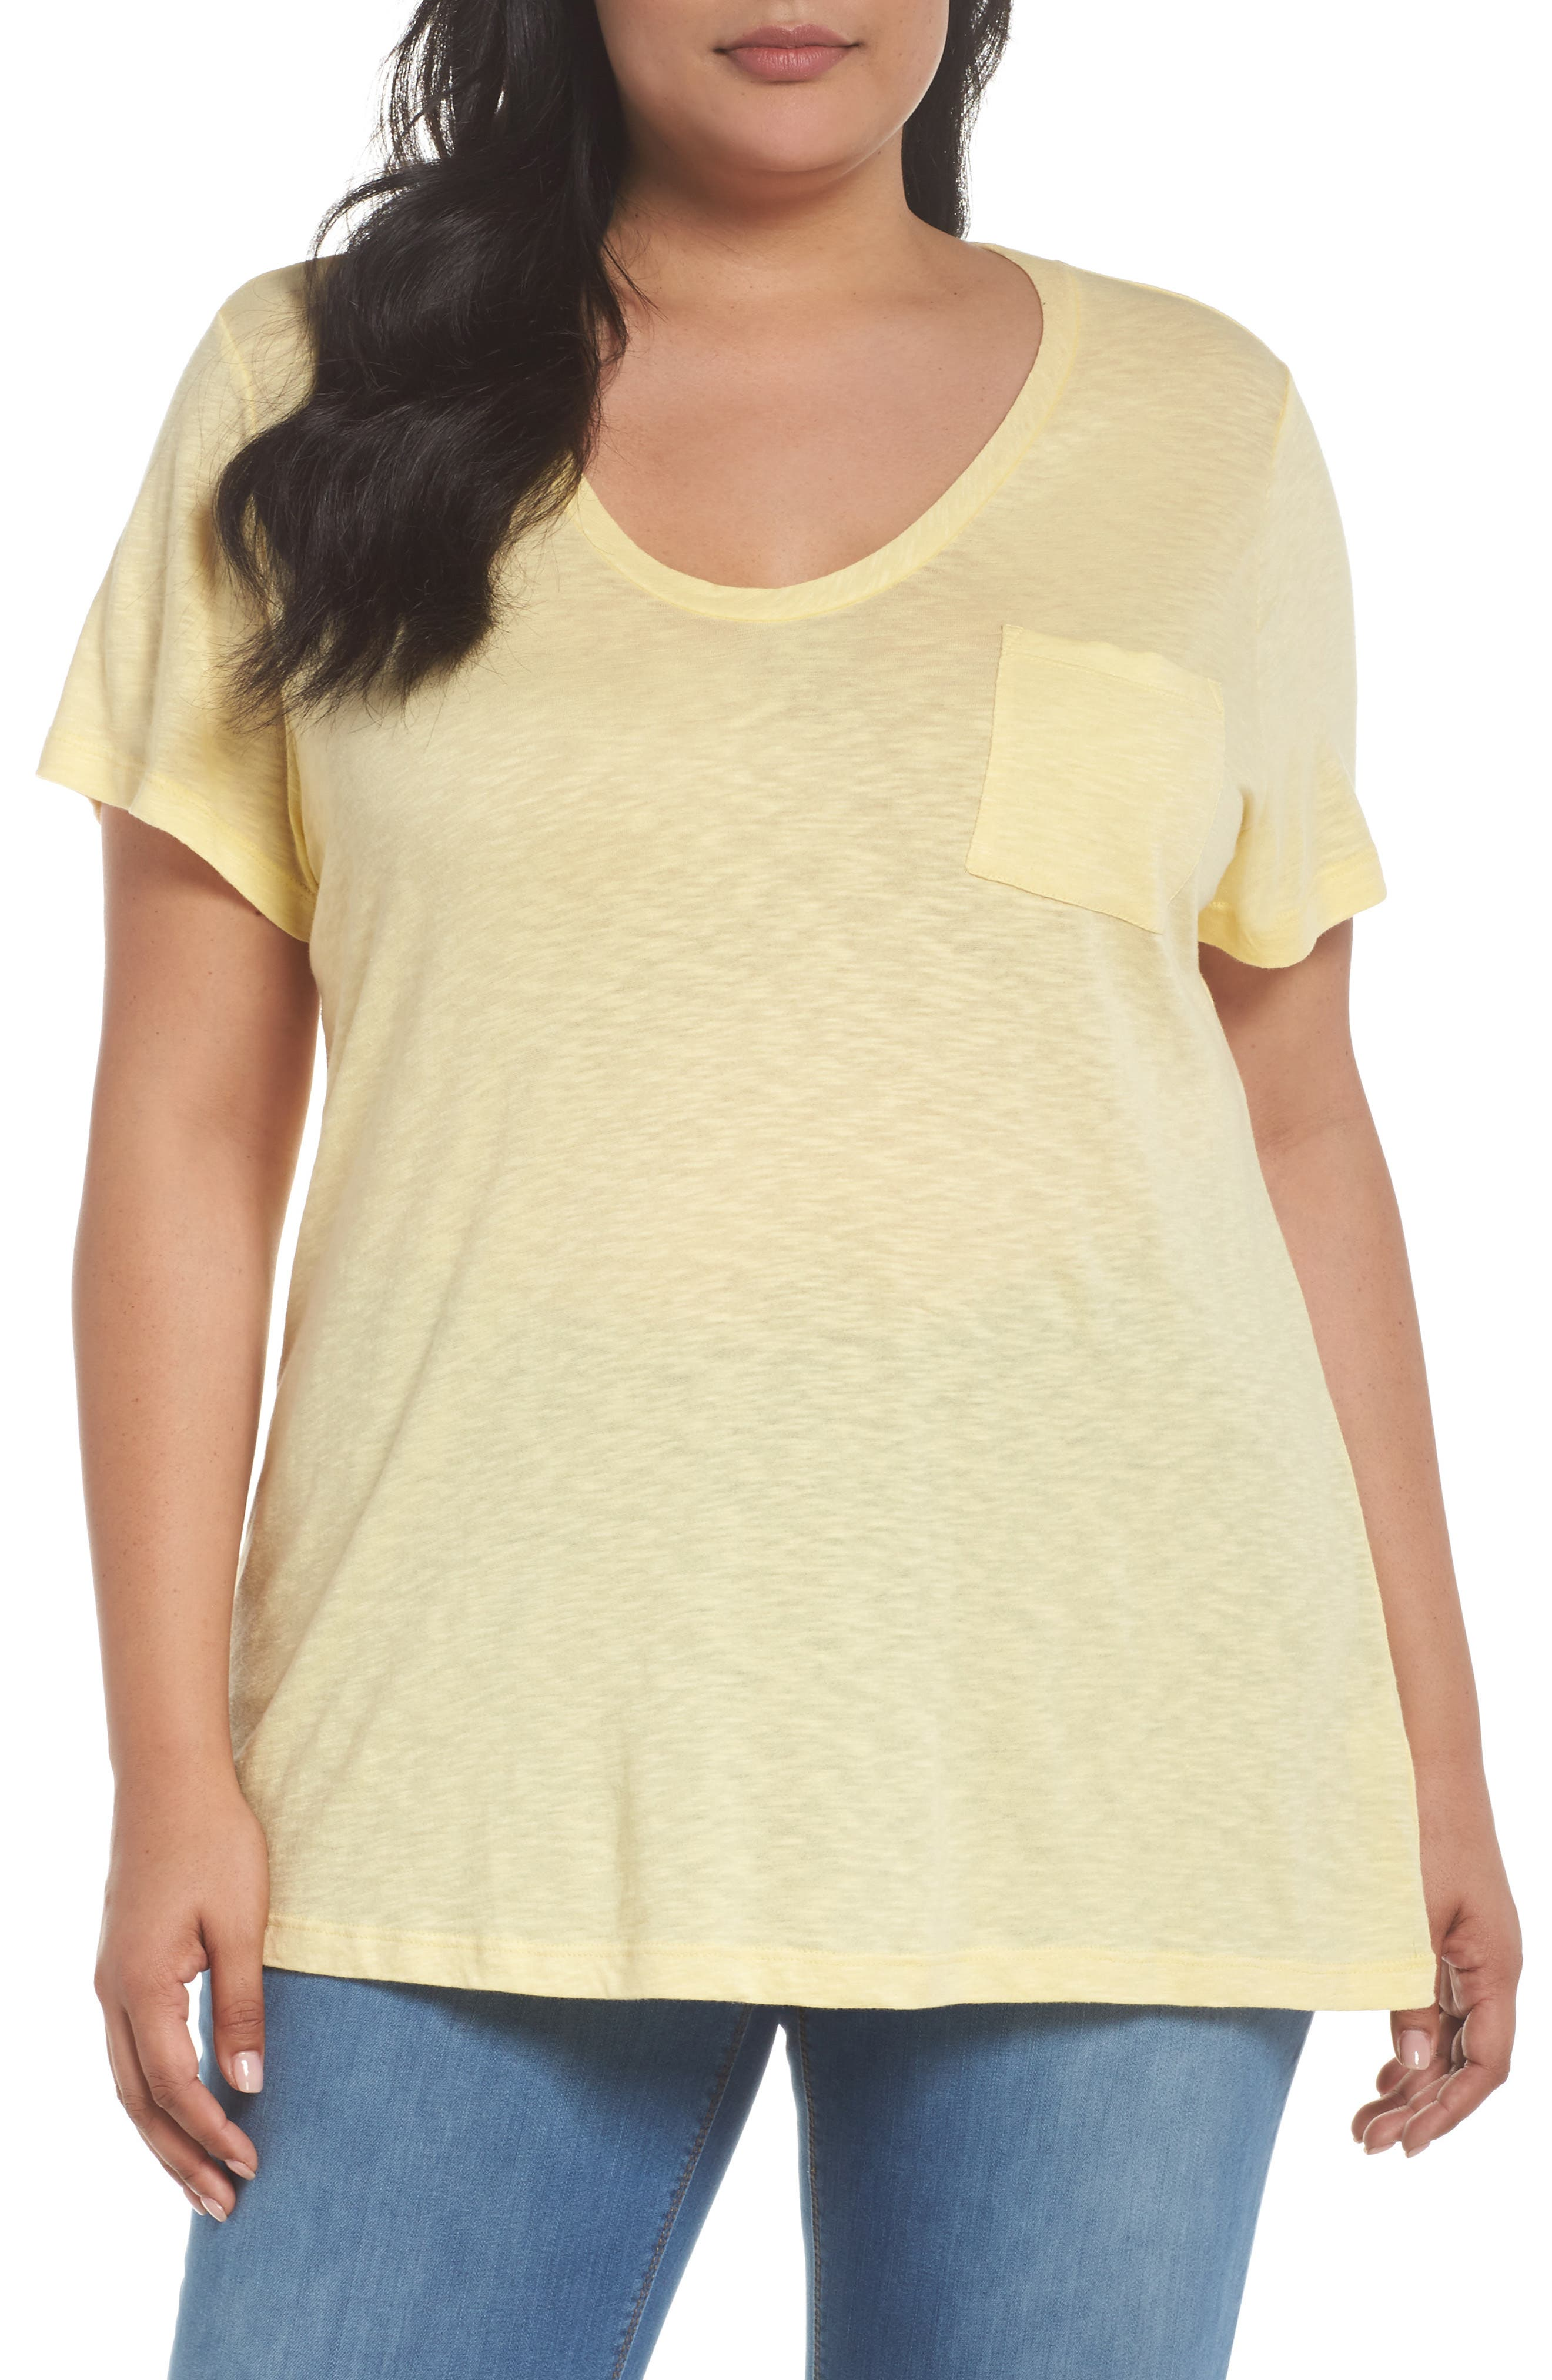 Alternate Image 1 Selected - Caslon® Rounded V-Neck Tee (Plus Size)